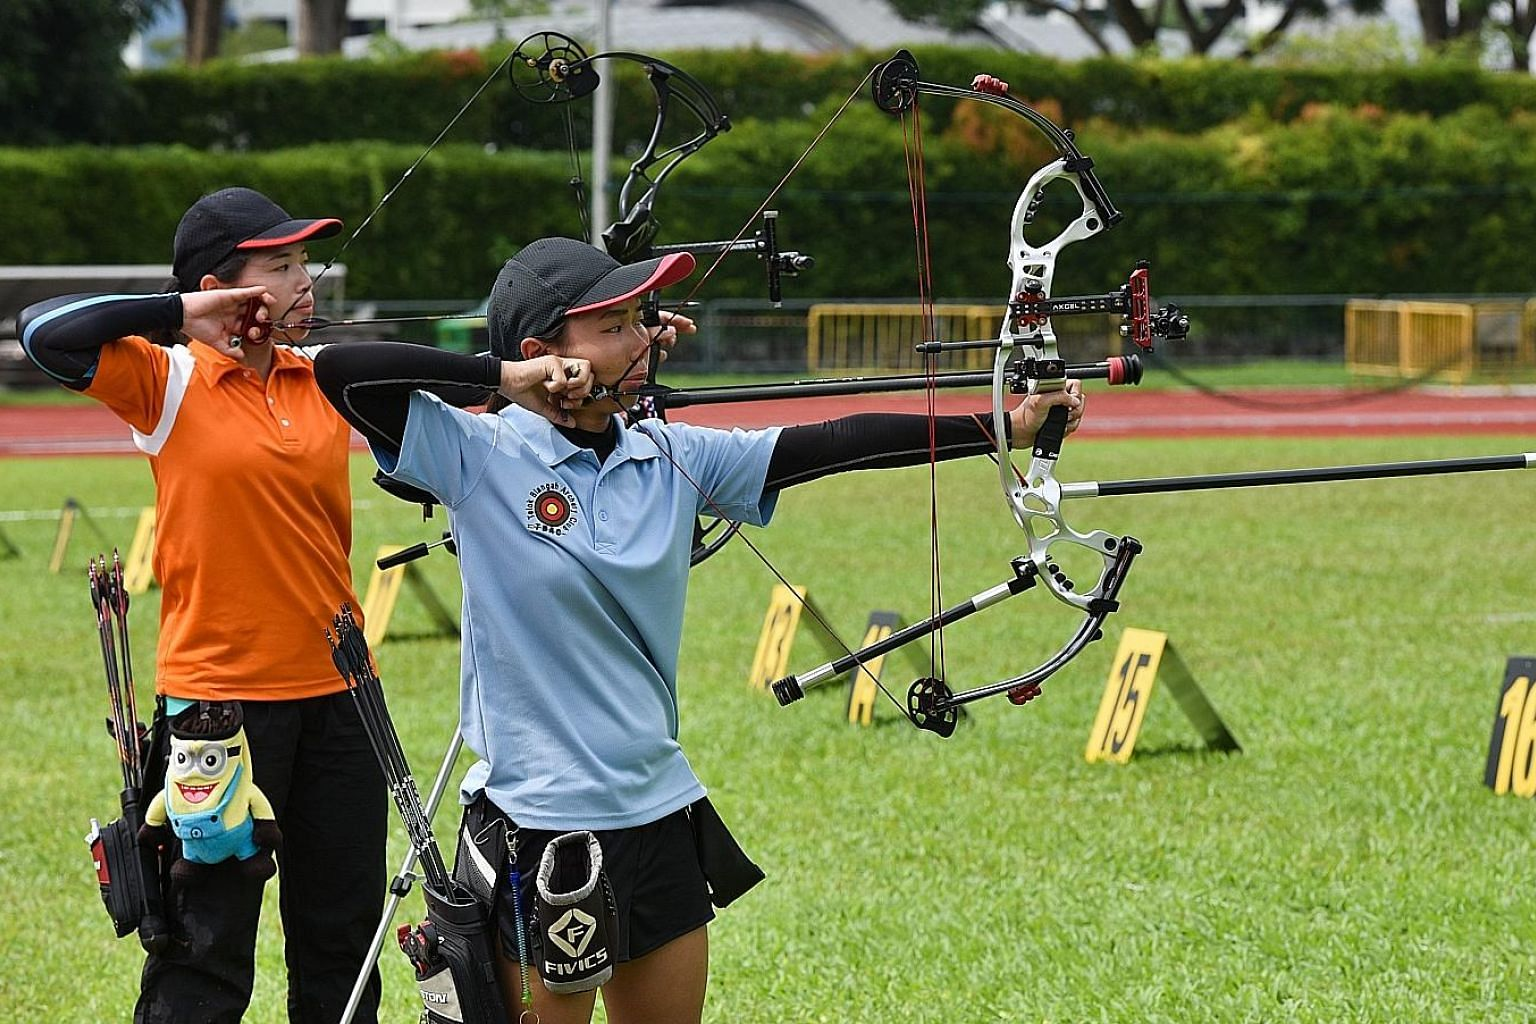 Contessa Loh (in orange) of the Flaming Arrows Archery Club and Ang Hwee Ying, 23, of Telok Blangah Archery Club facing off in the final of the Compound Women's category.